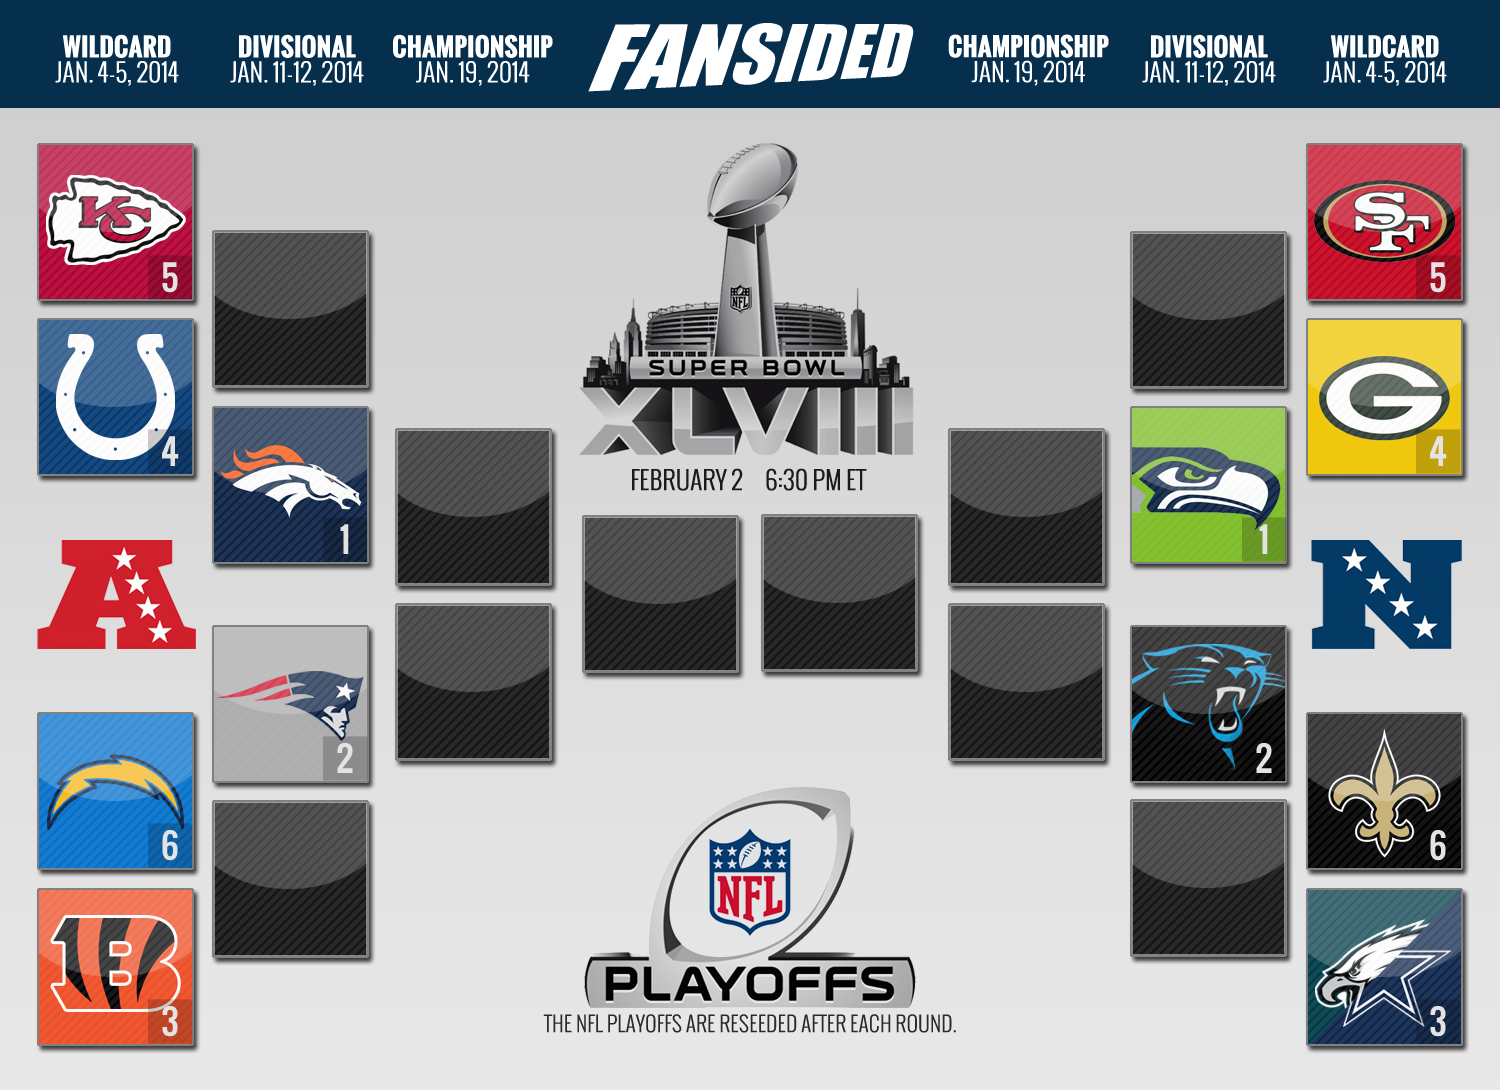 NFL Playoff Bracket Entering Week 17 Sunday Night Football